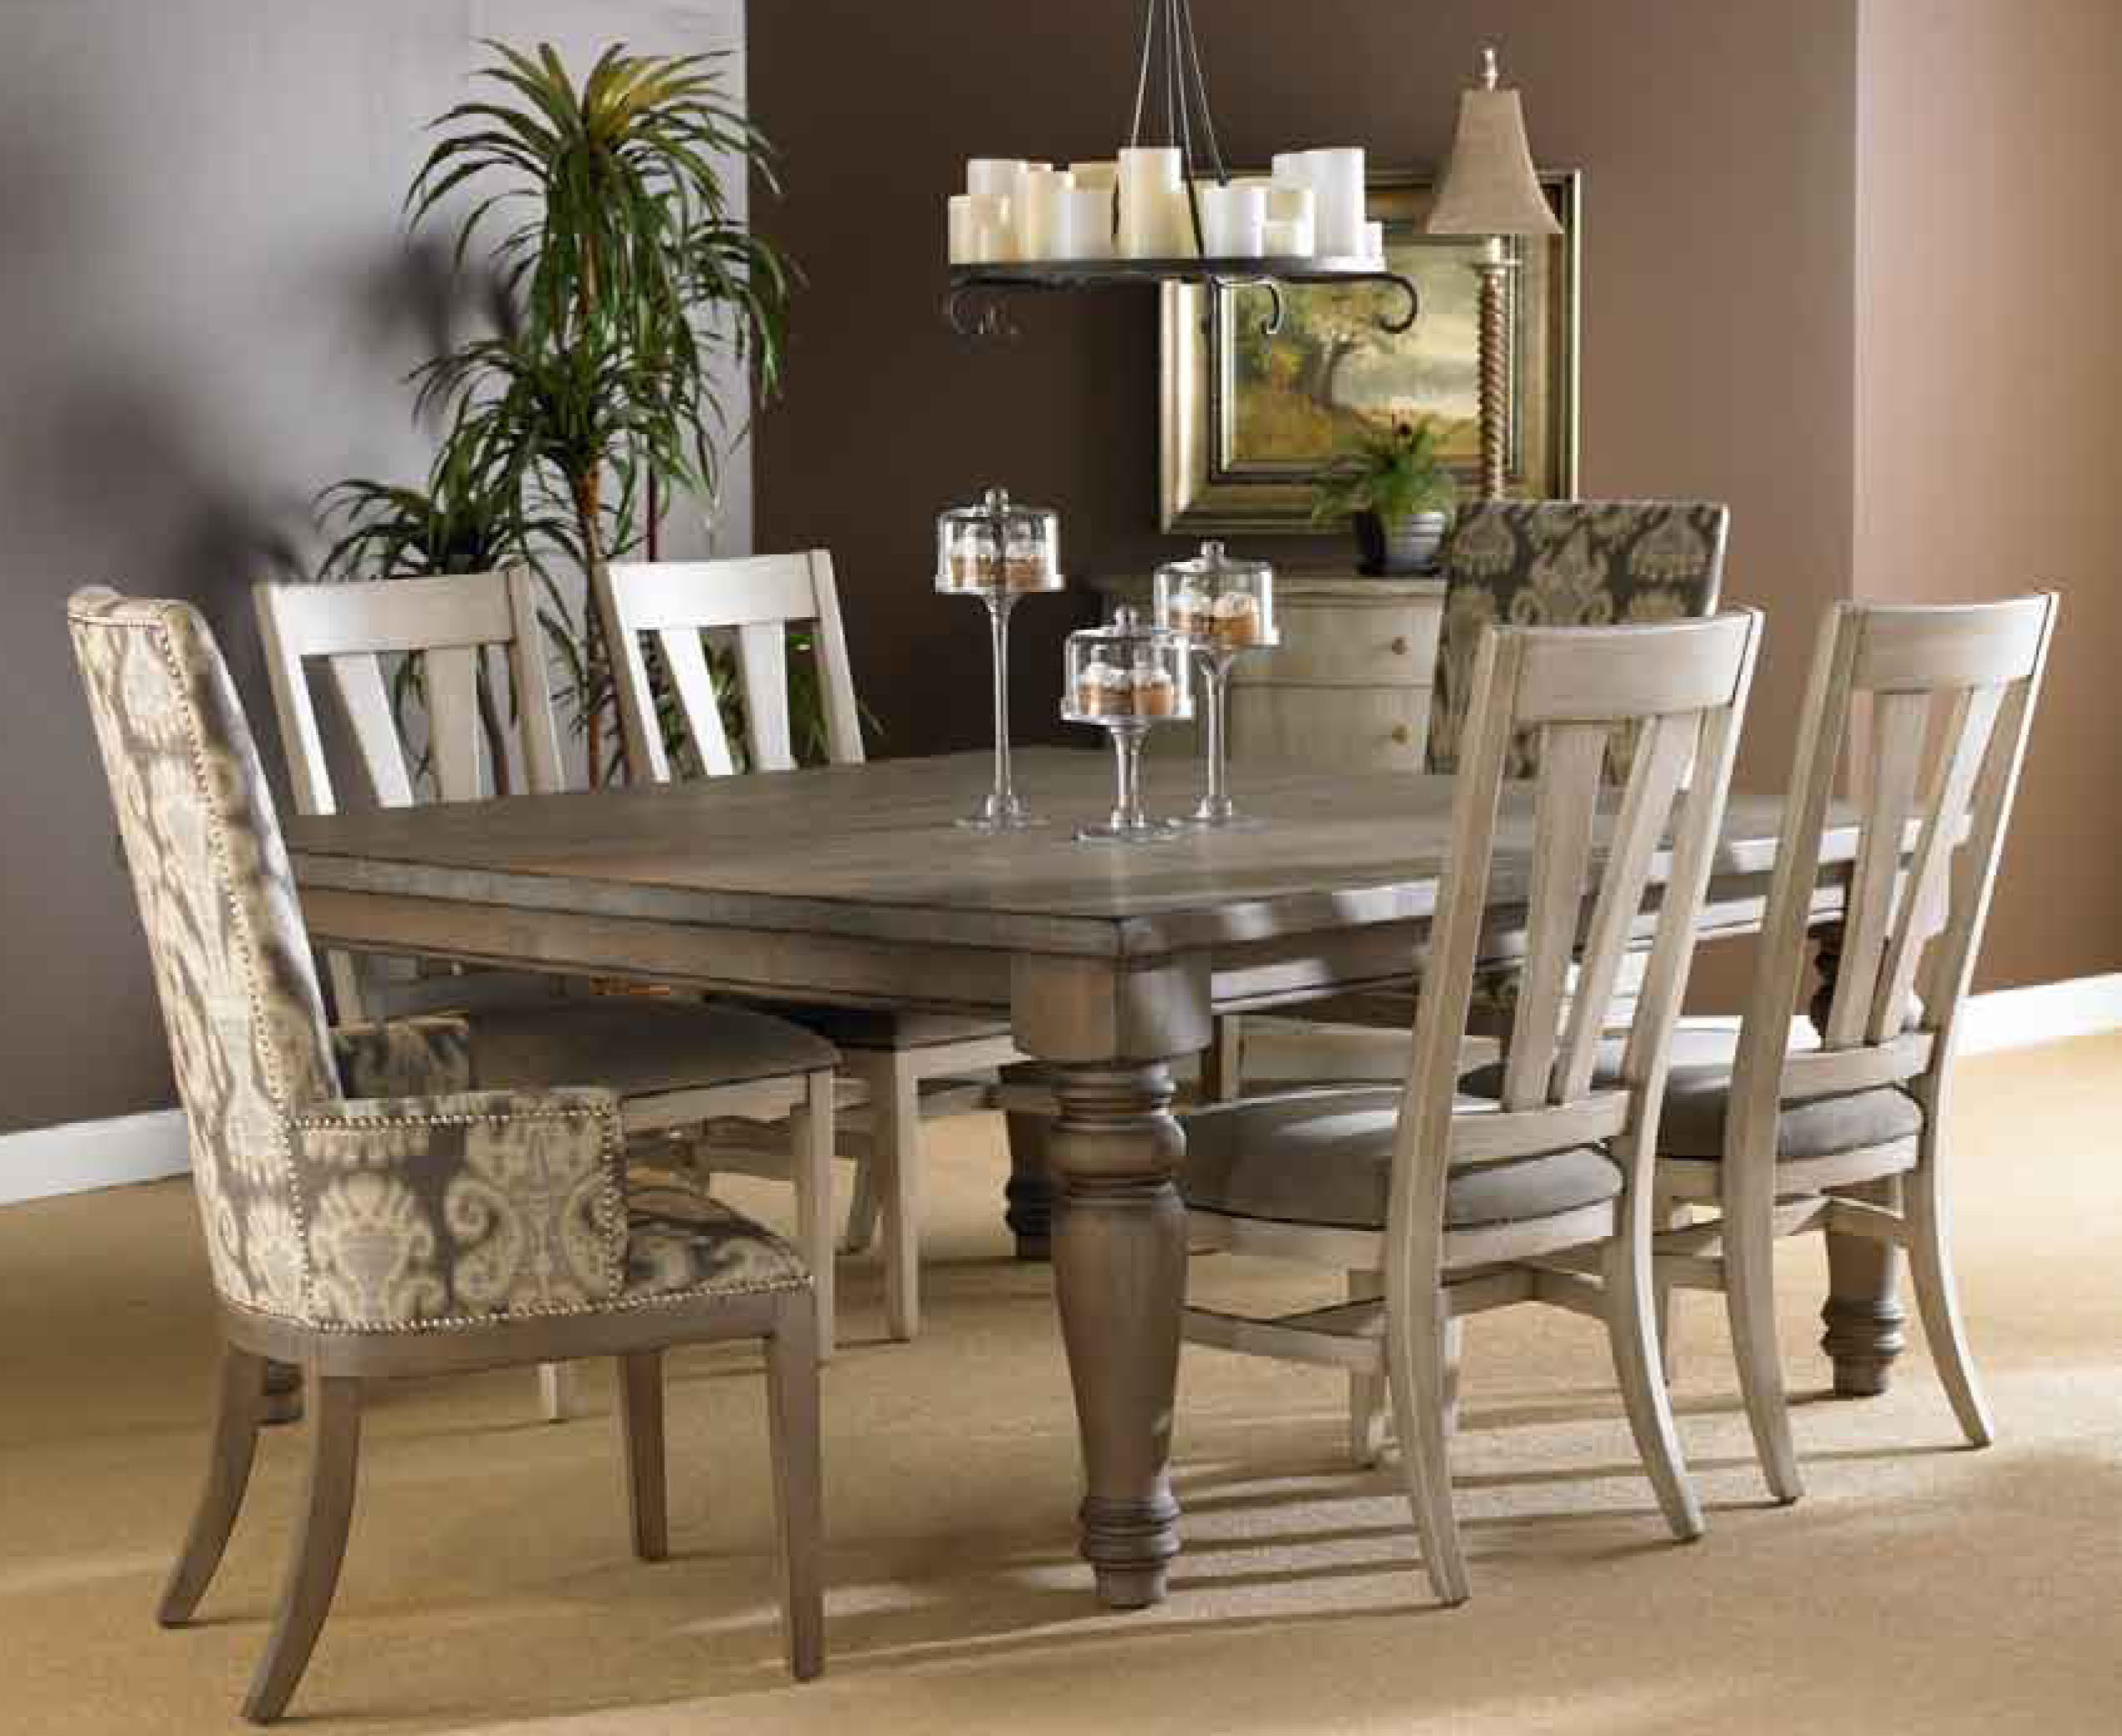 Best ideas about Gray Dining Table . Save or Pin 301 Moved Permanently Now.